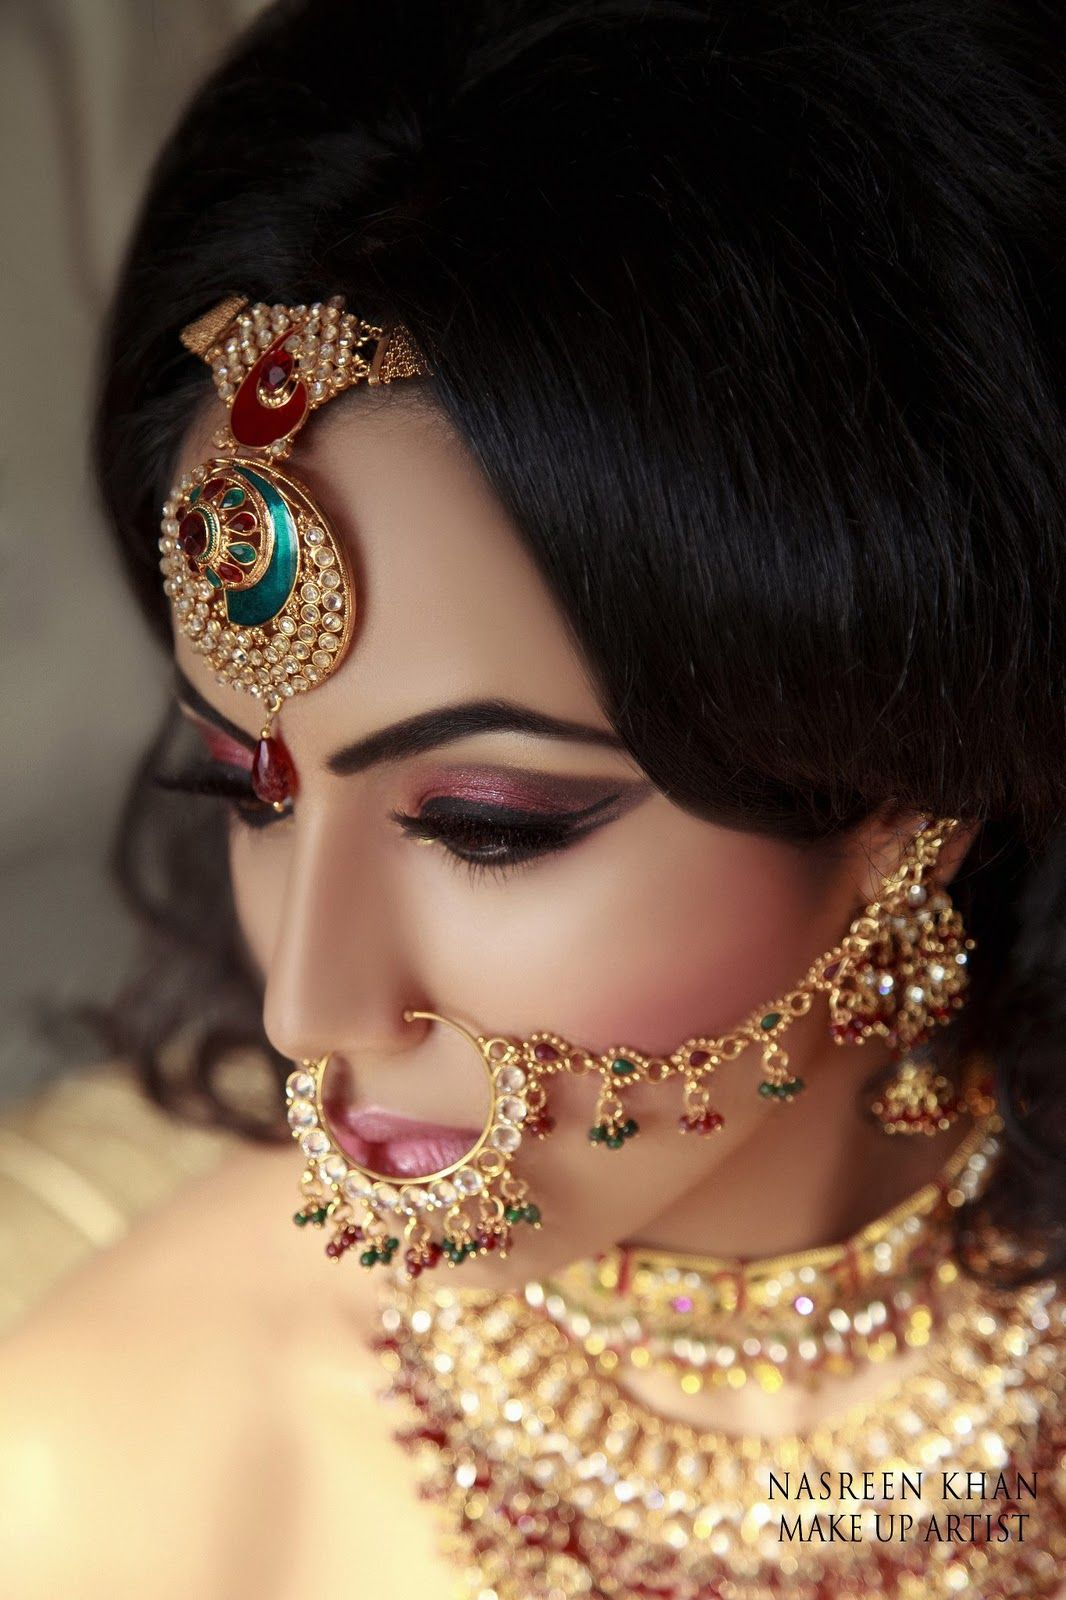 indian wedding hairstyle gallery%0A Makeup   Stunning Bridal Makeup by Makeup Artist Nasreen Khan   FunMag